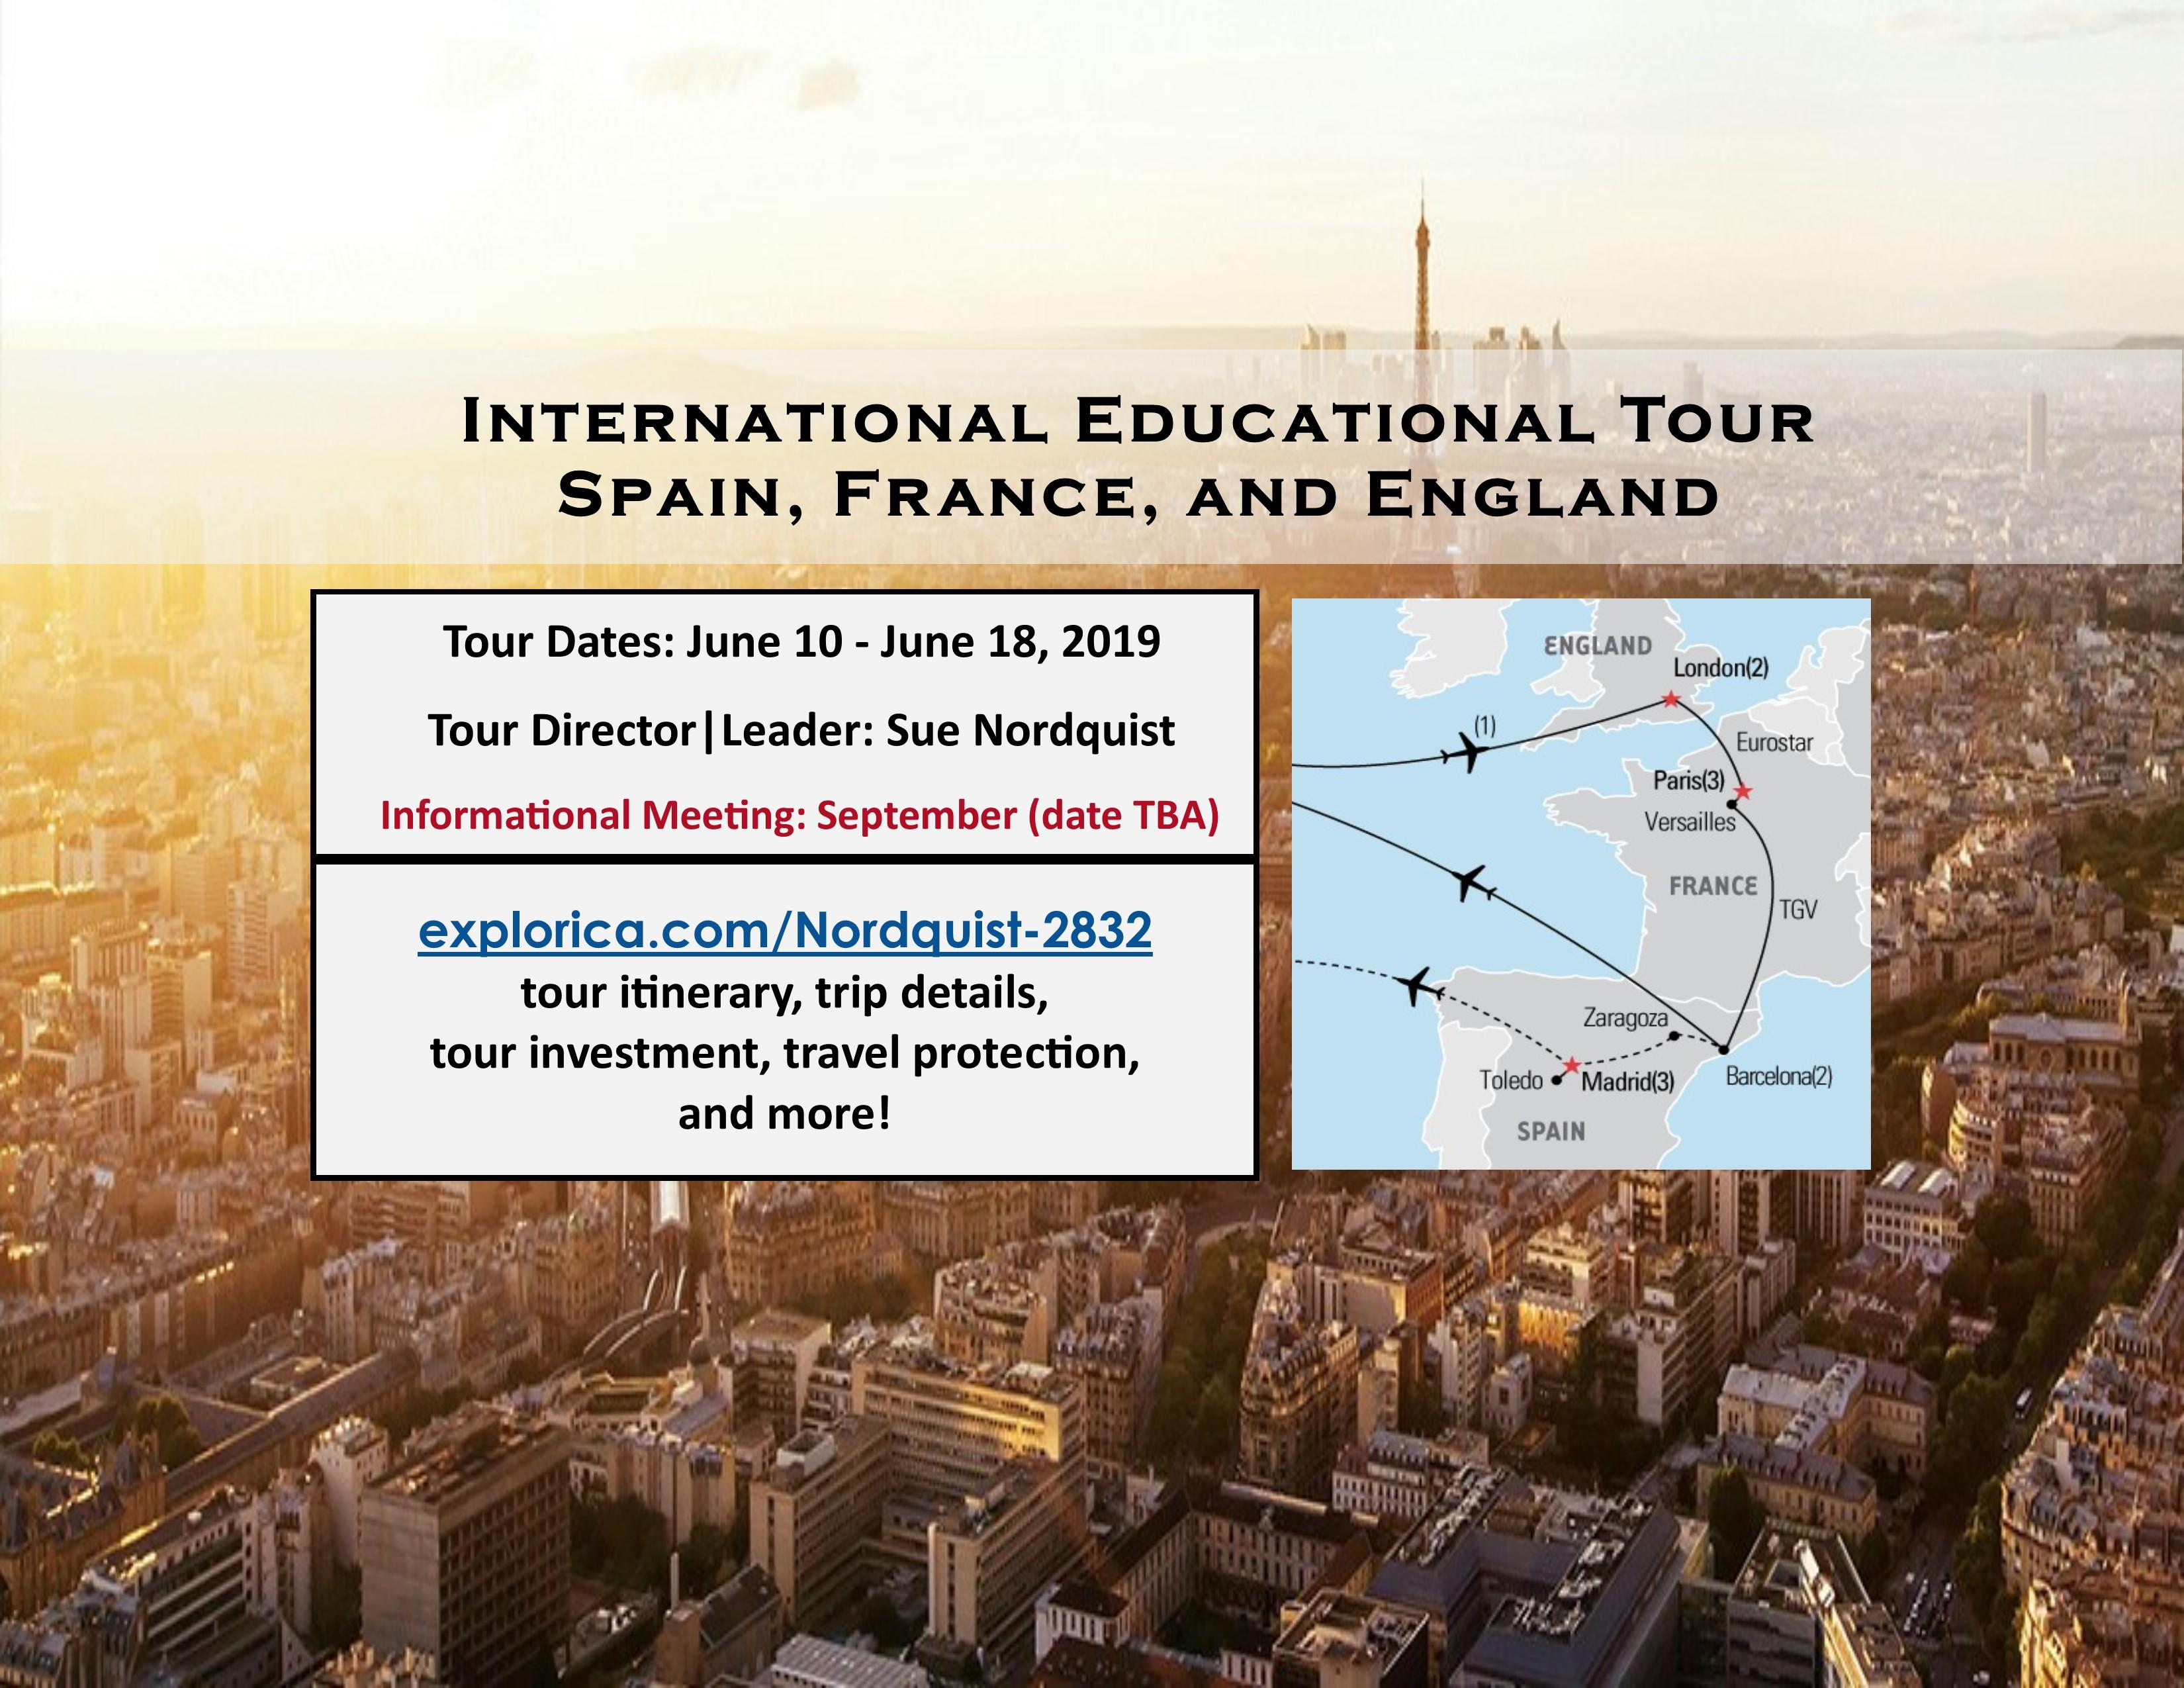 International Educational Tour, Summer 2019